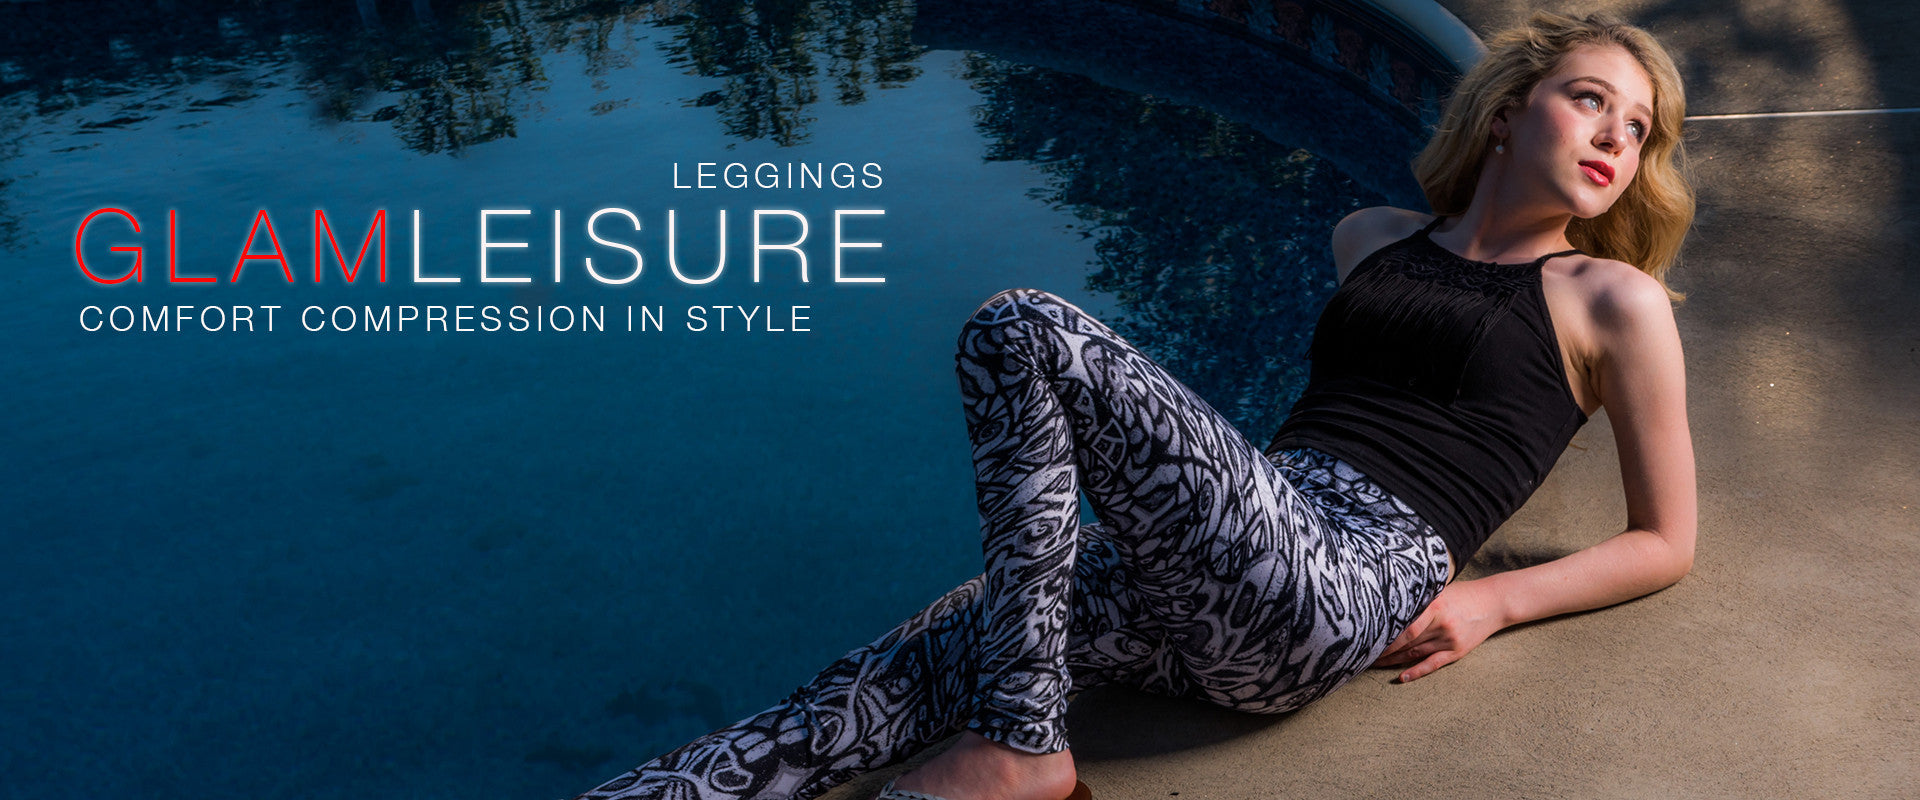 Glamleisure Leggings by Charlee